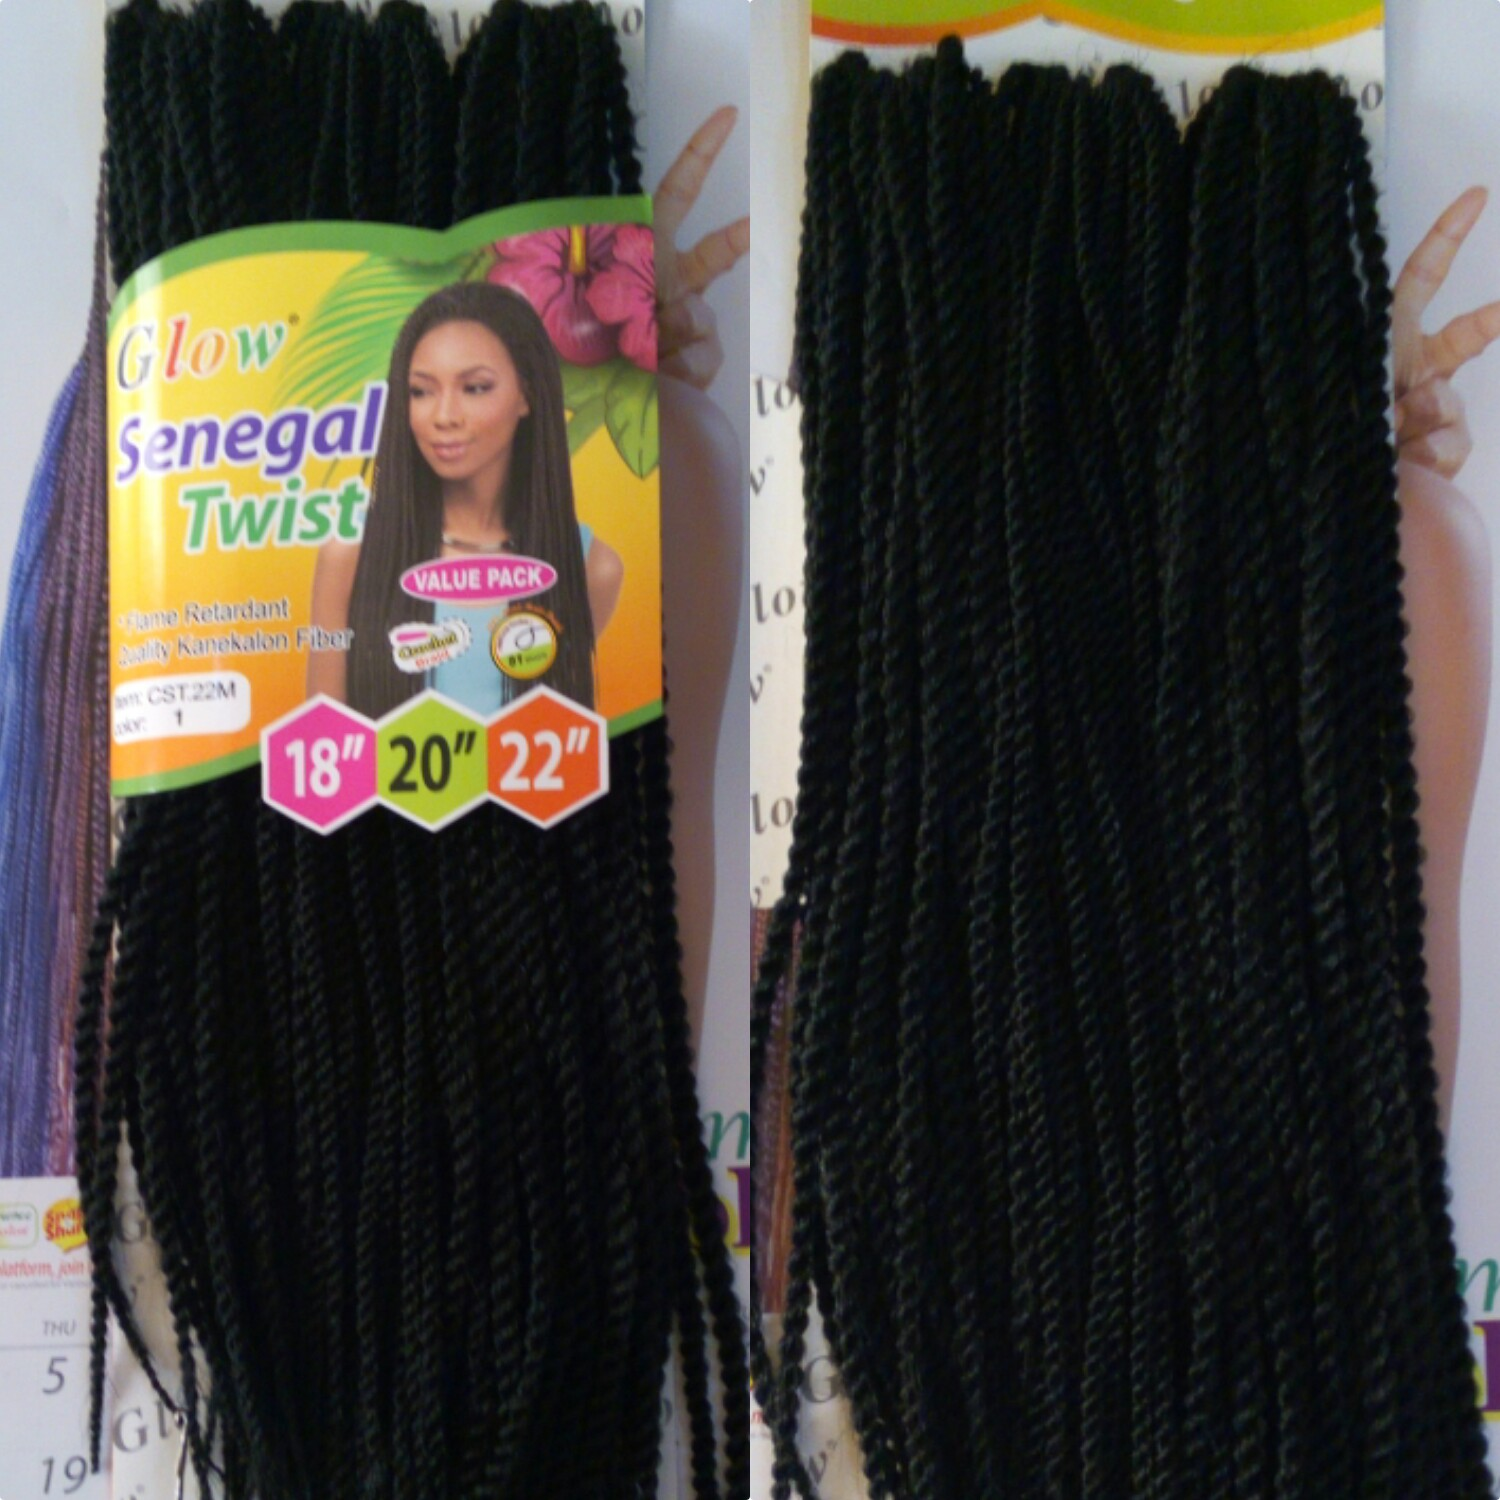 18-22'' GLOW SENEGAL TWIST